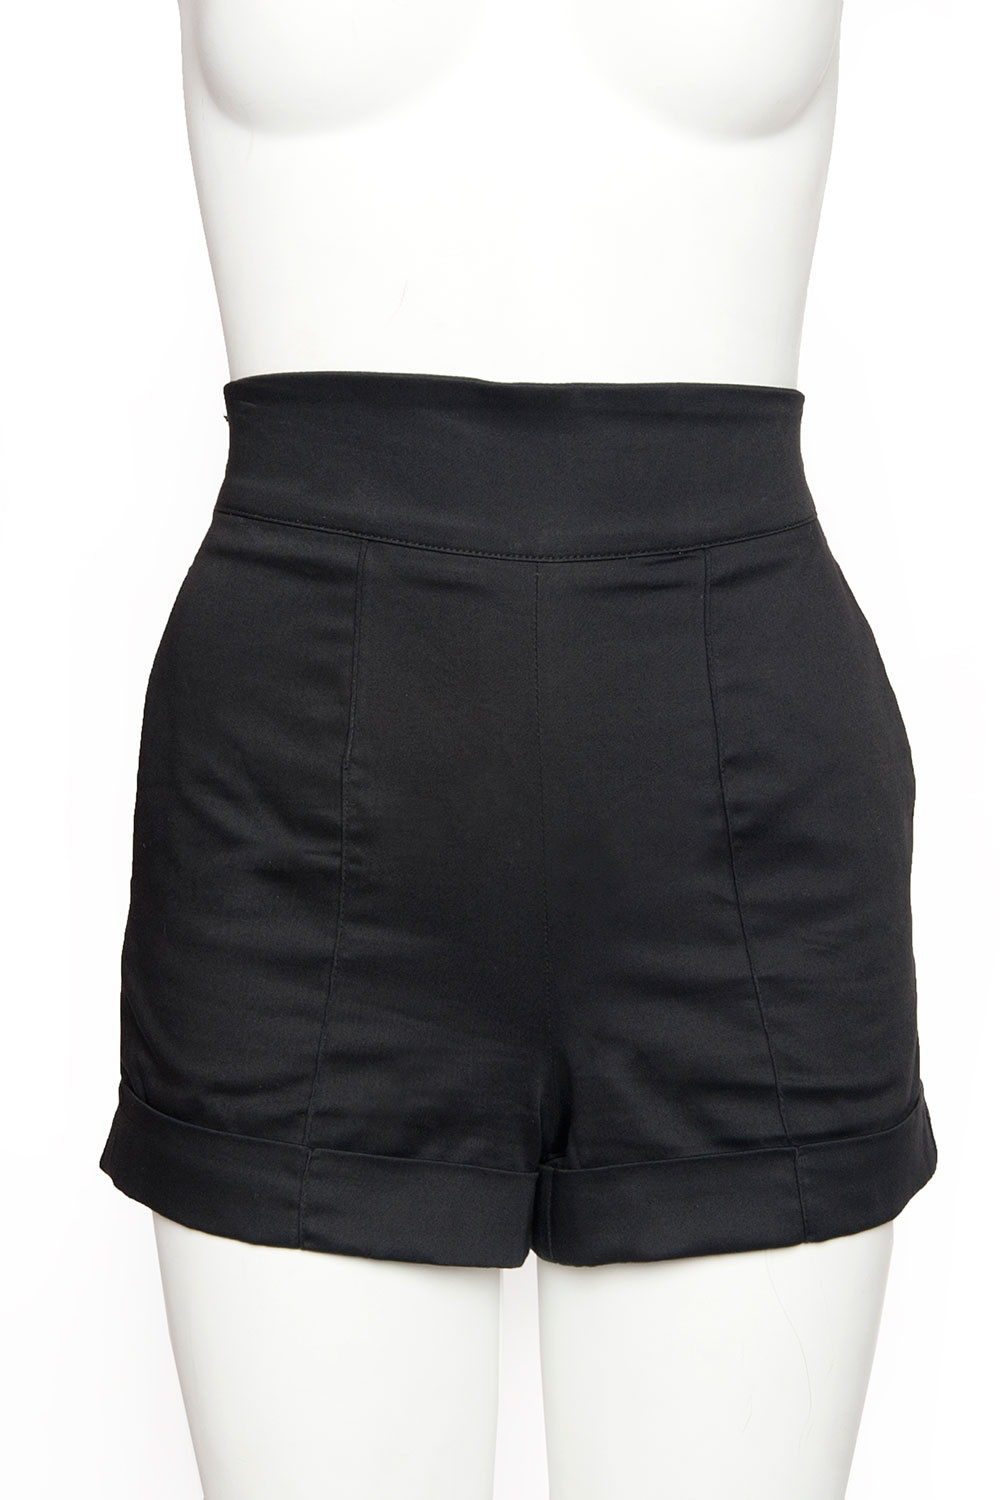 black high waisted shorts high waisted shorts in black sateen VZDJHCD